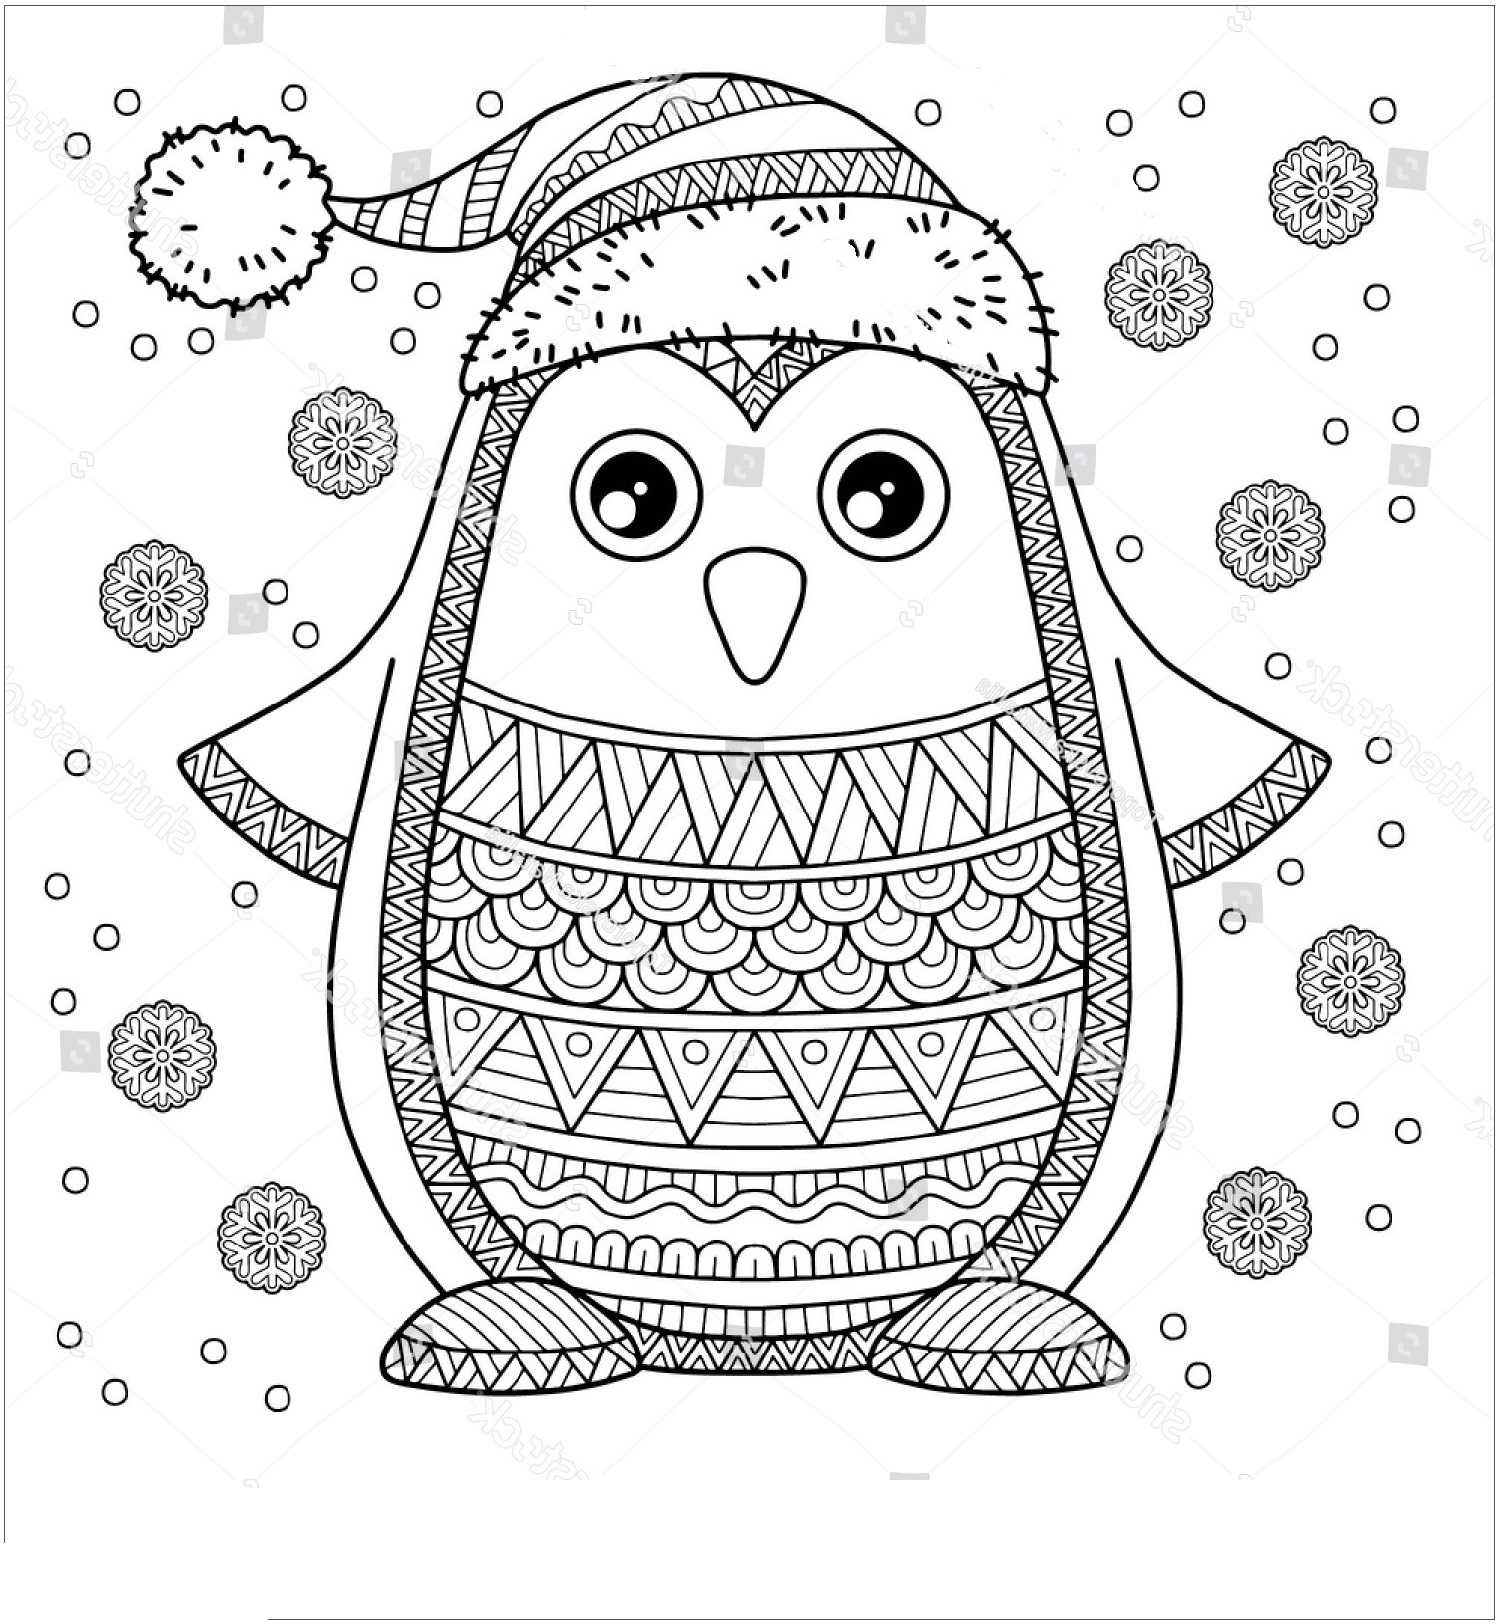 coloring penguins 30 free penguin coloring pages printable coloring penguins